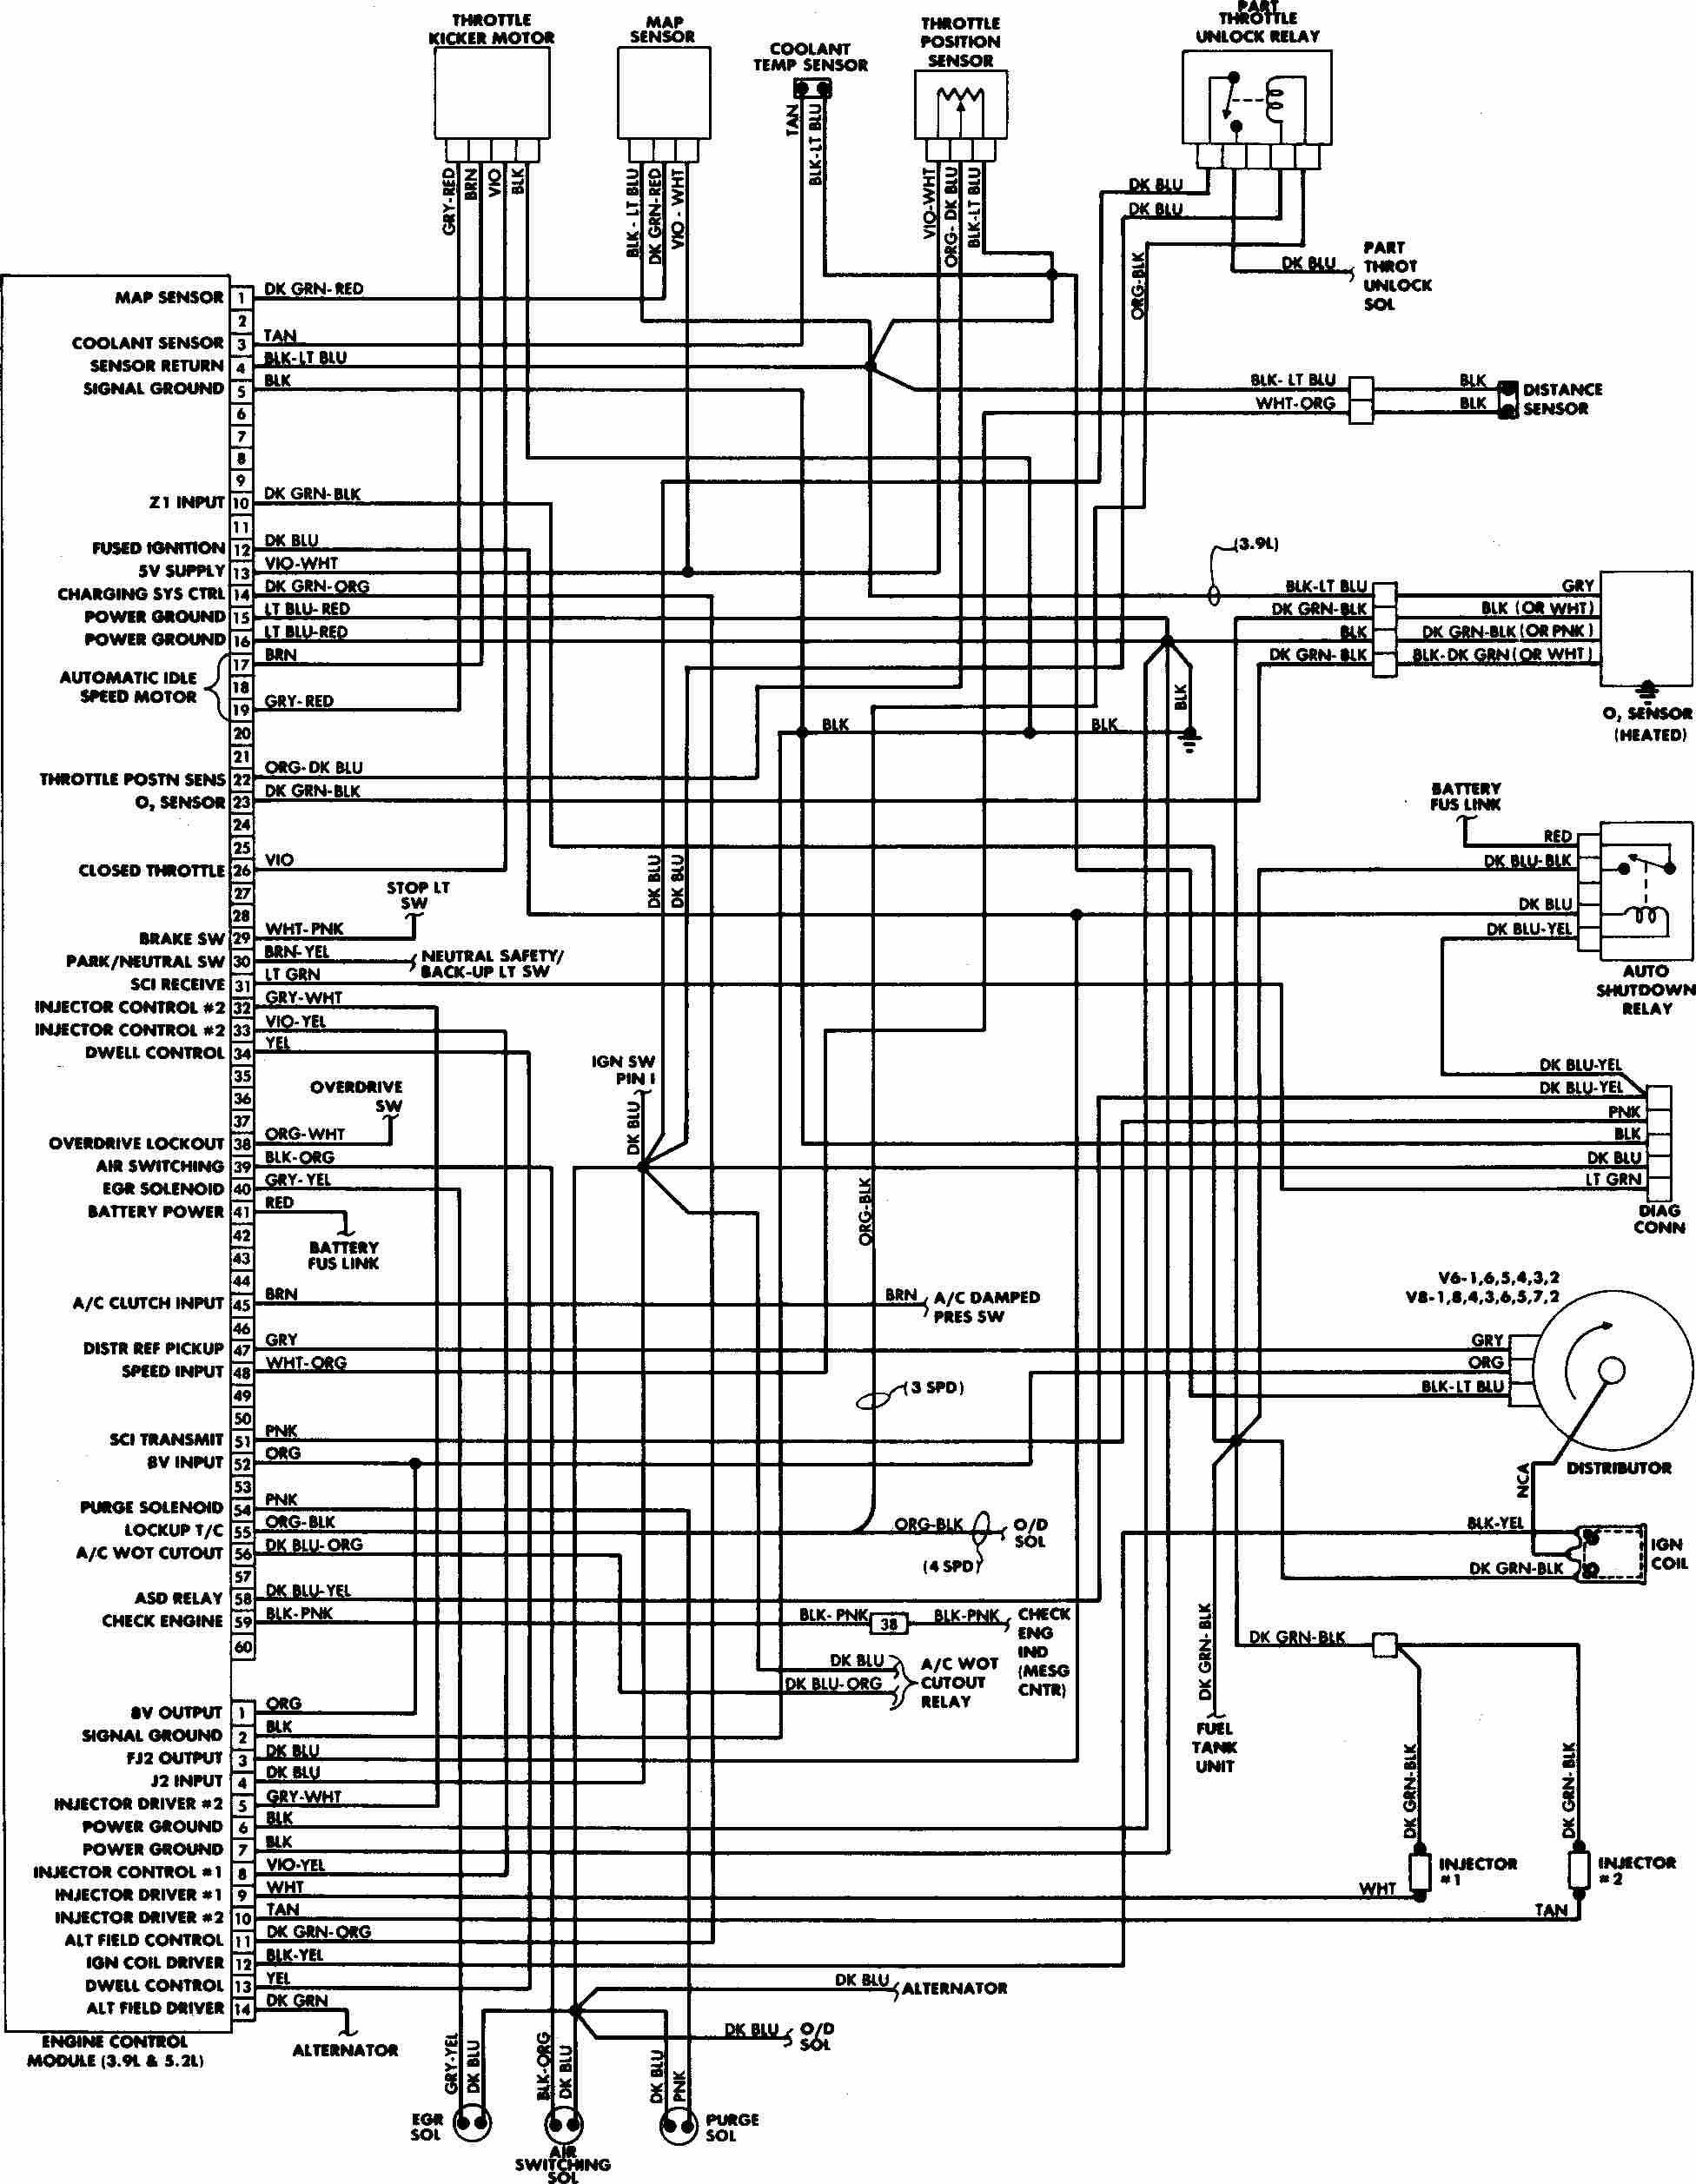 Wiring Diagram For Starter Solenoid 2000 Dodge Neon from i.pinimg.com